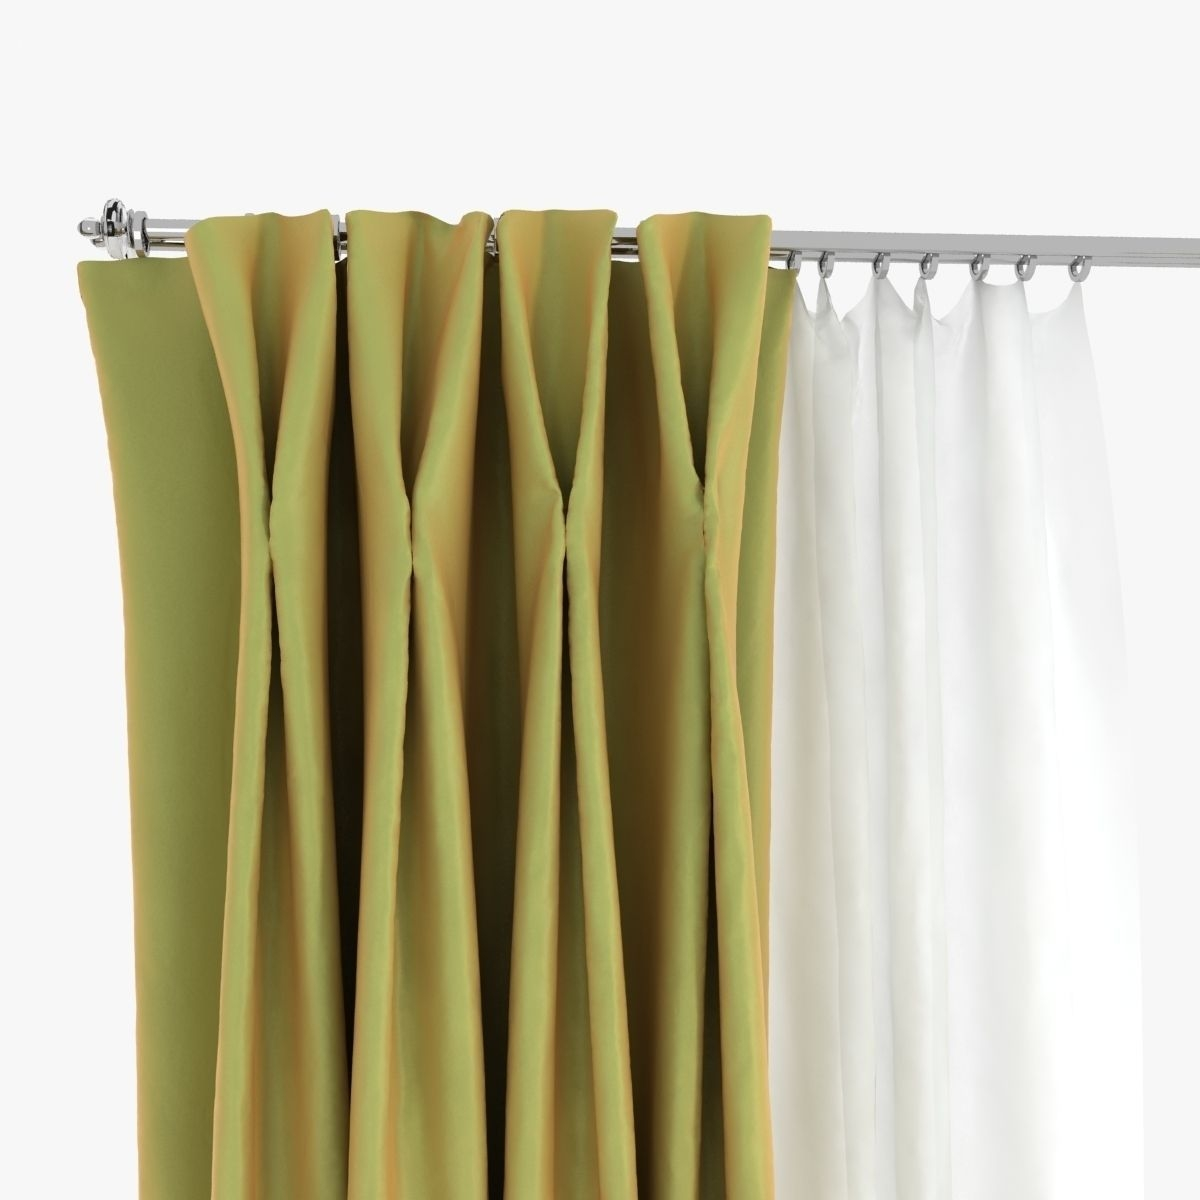 Double Pinch Pleat Curtains 3d Model Max Obj Fbx Mtl Regarding Double Pinch Pleat Curtains (Image 5 of 15)